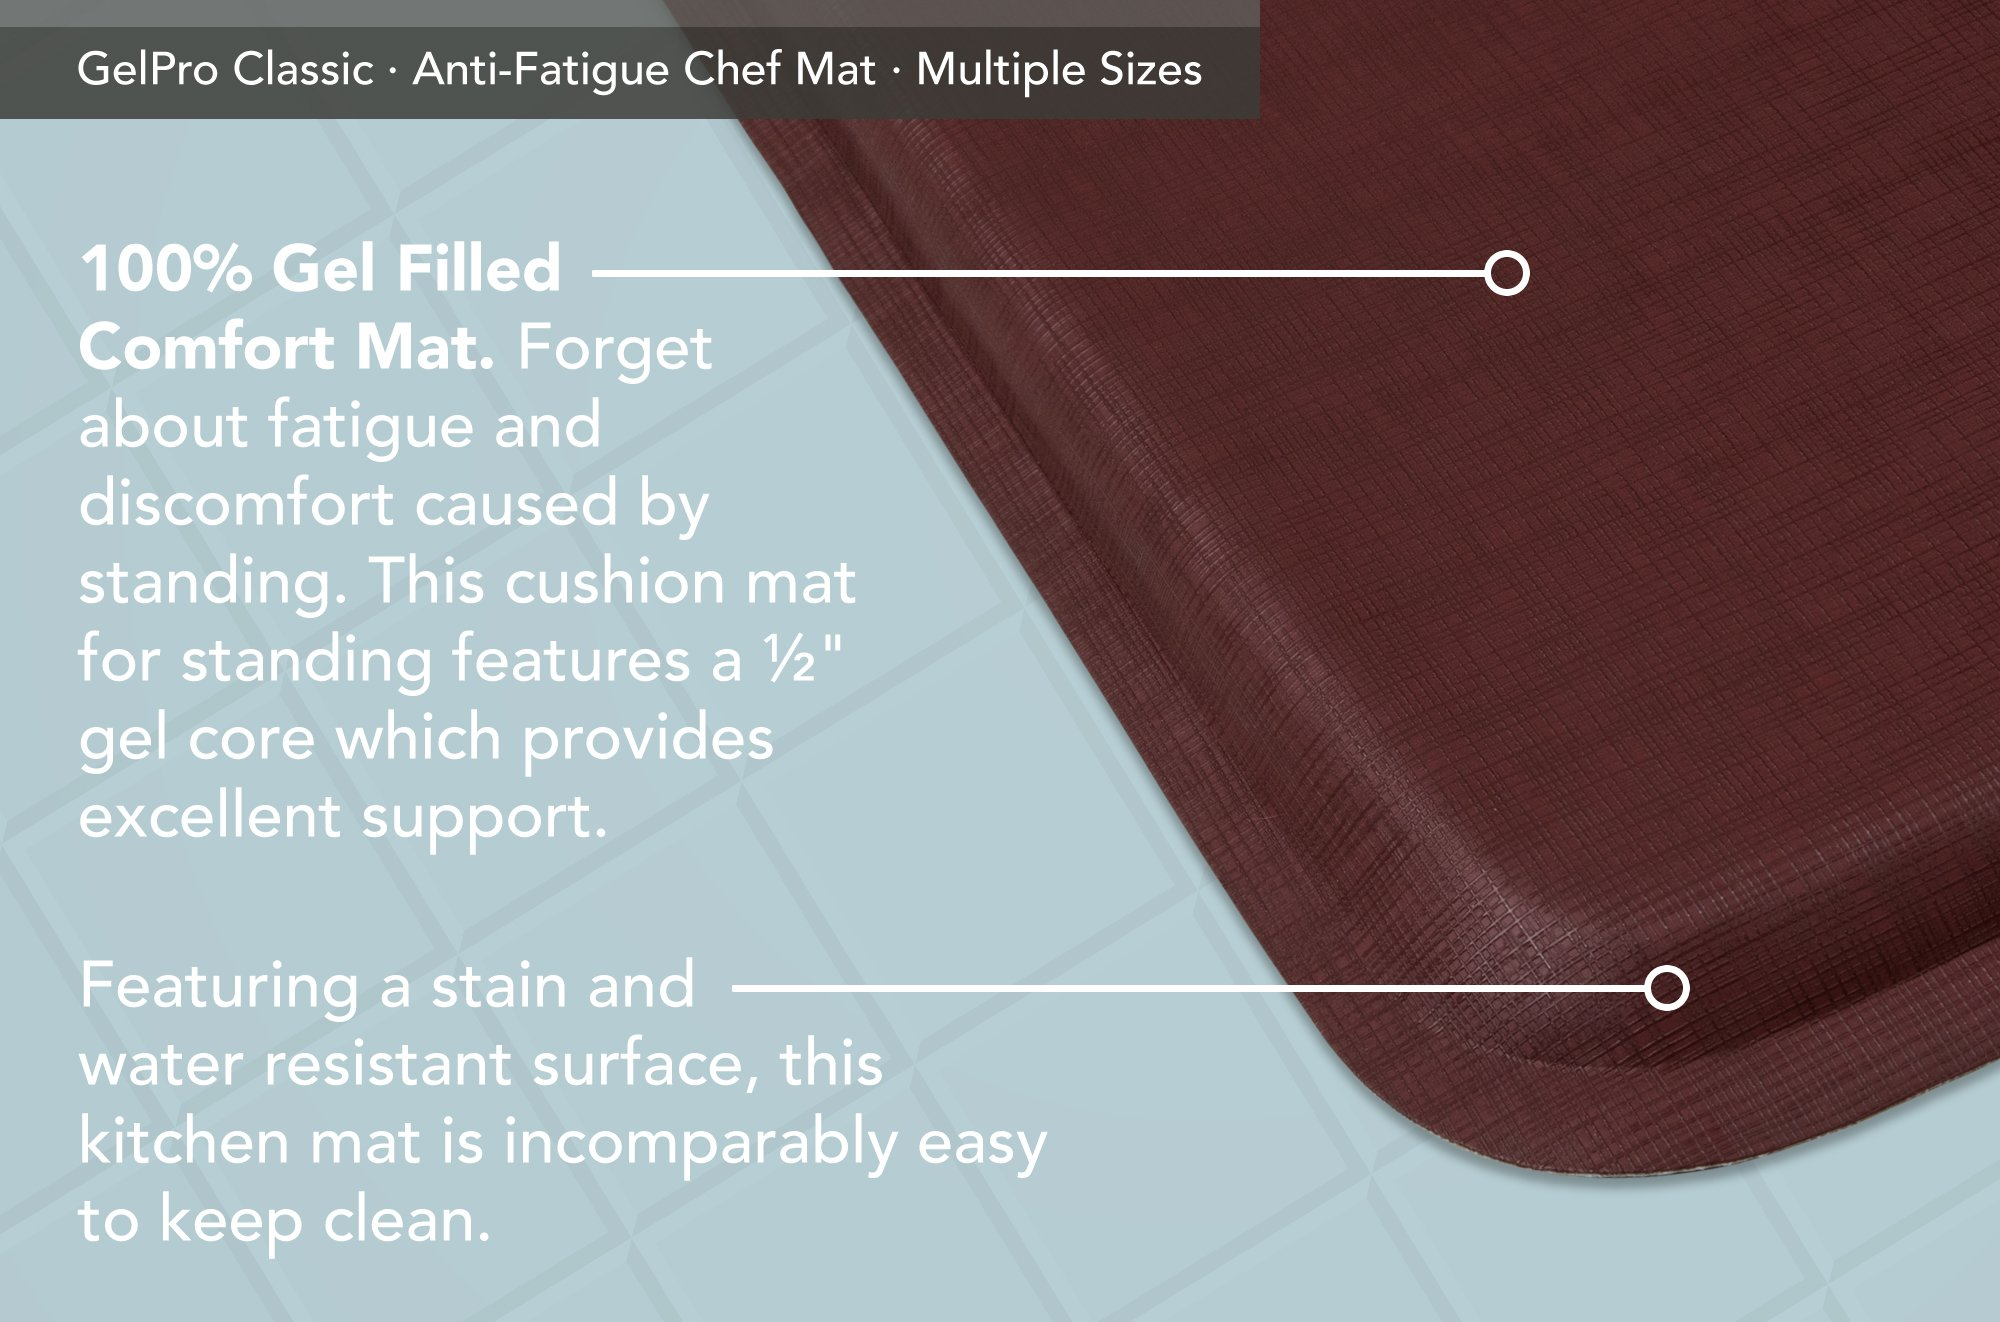 """GelPro Classic Anti-Fatigue Kitchen Comfort Chef Floor Mat, 20x72"""", Linen Cardinal Stain Resistant Surface with ½"""" gel core for health & wellness by GelPro (Image #4)"""